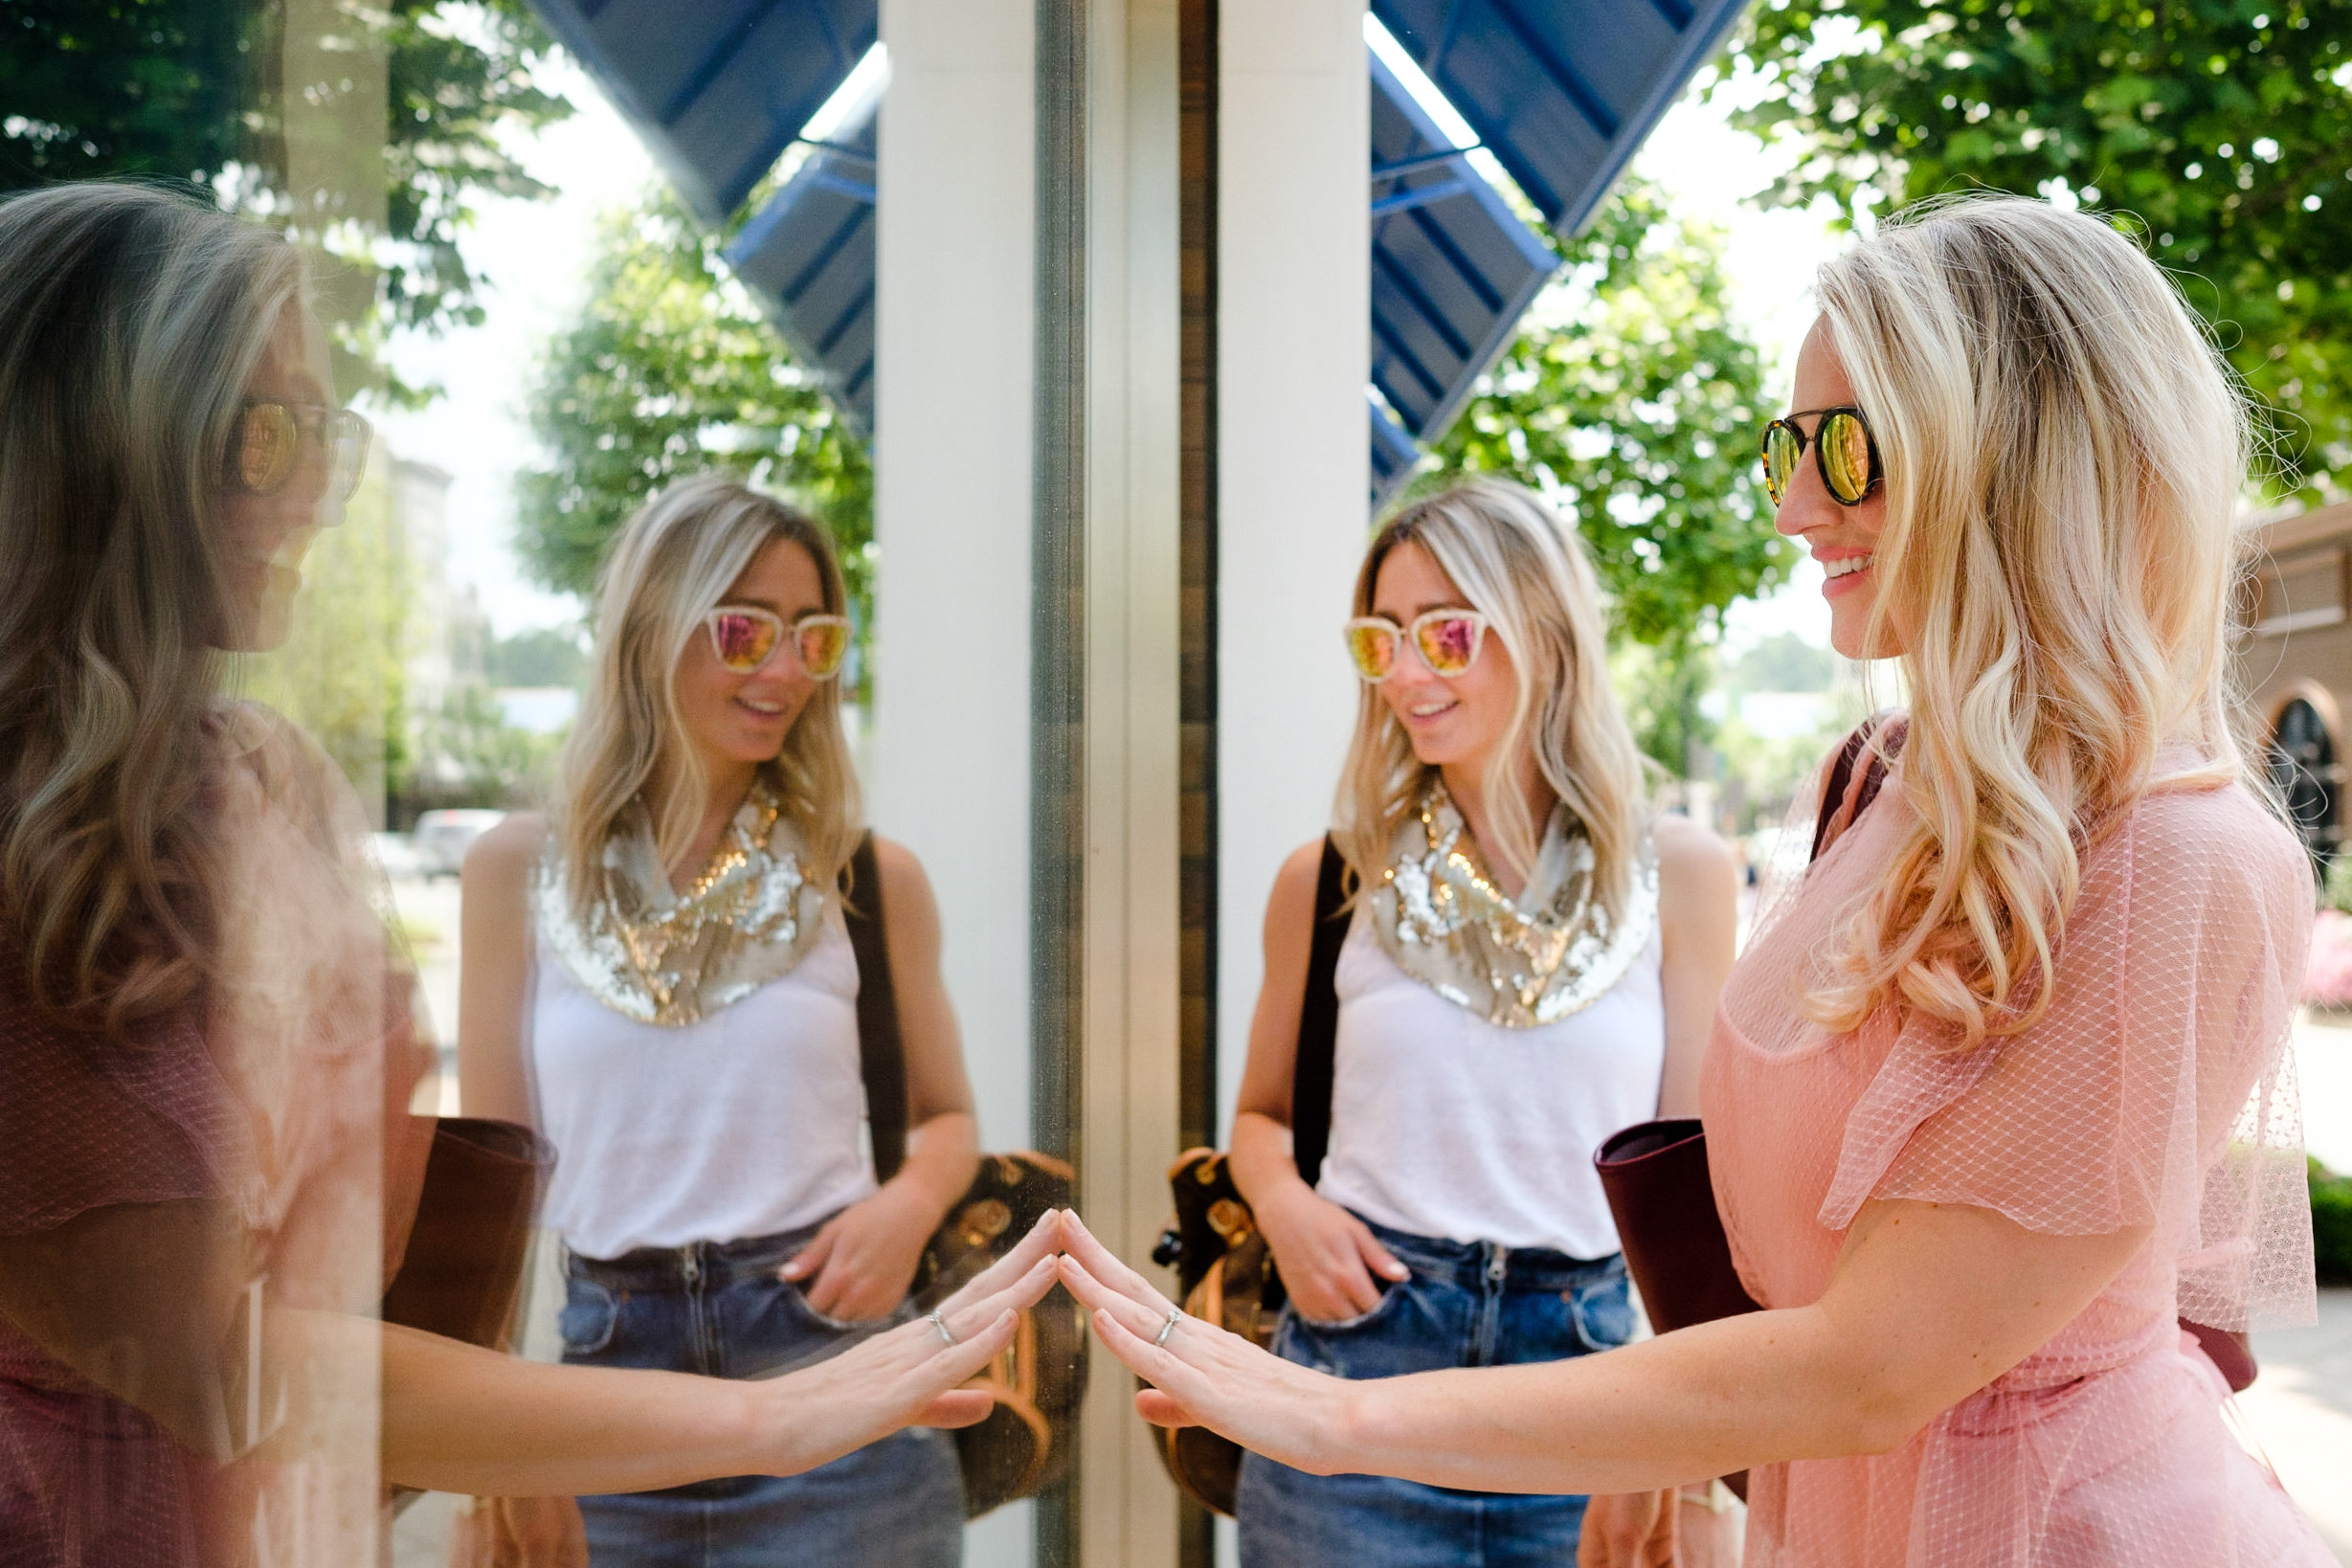 Summer Fashion with Avalon Insider by Atlanta blogger Jessica of Happily Hughes